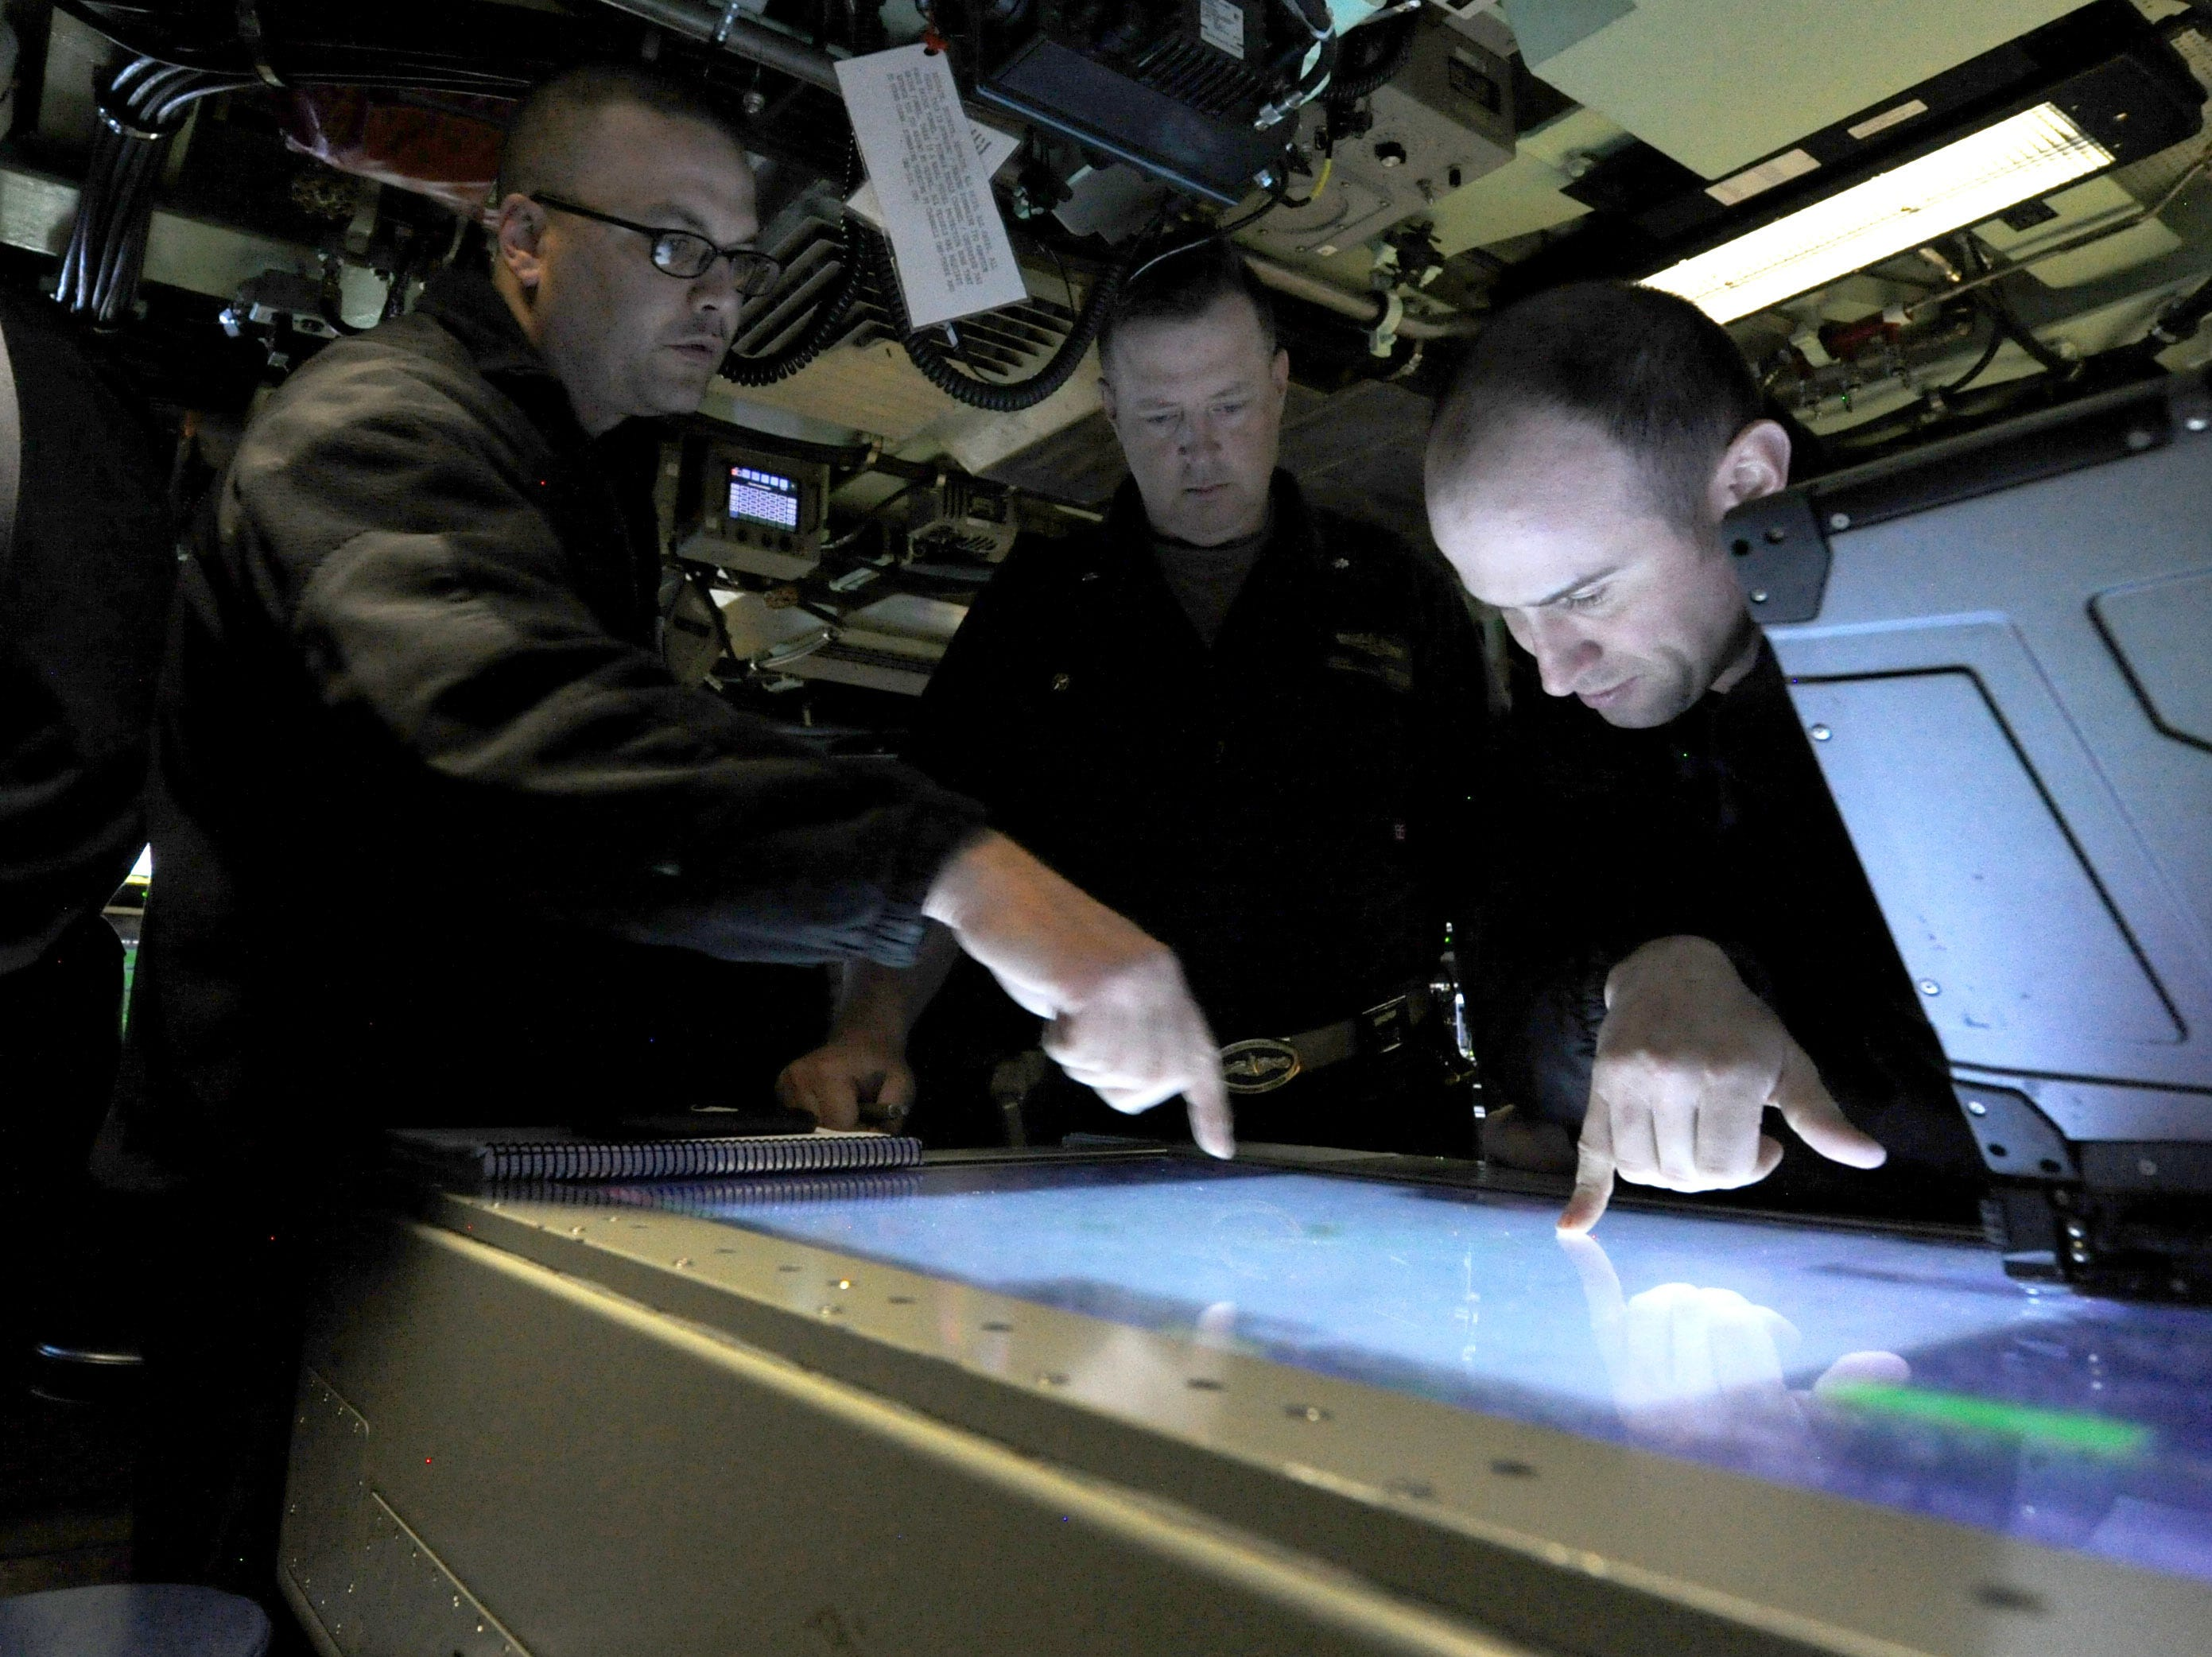 Cmdr. Jesse Zimbauer, center, commanding officer of Pre-Commissioning Unit Indiana (SSN 789) observes the review of navigational charts while underway, June 24, 2018. Indiana is the 16th Virginia-class fast attack submarine and is scheduled to be commissioned Sept. 29, 2018. (U.S. Navy photo by Chief Mass Communication Specialist Darryl Wood/Released